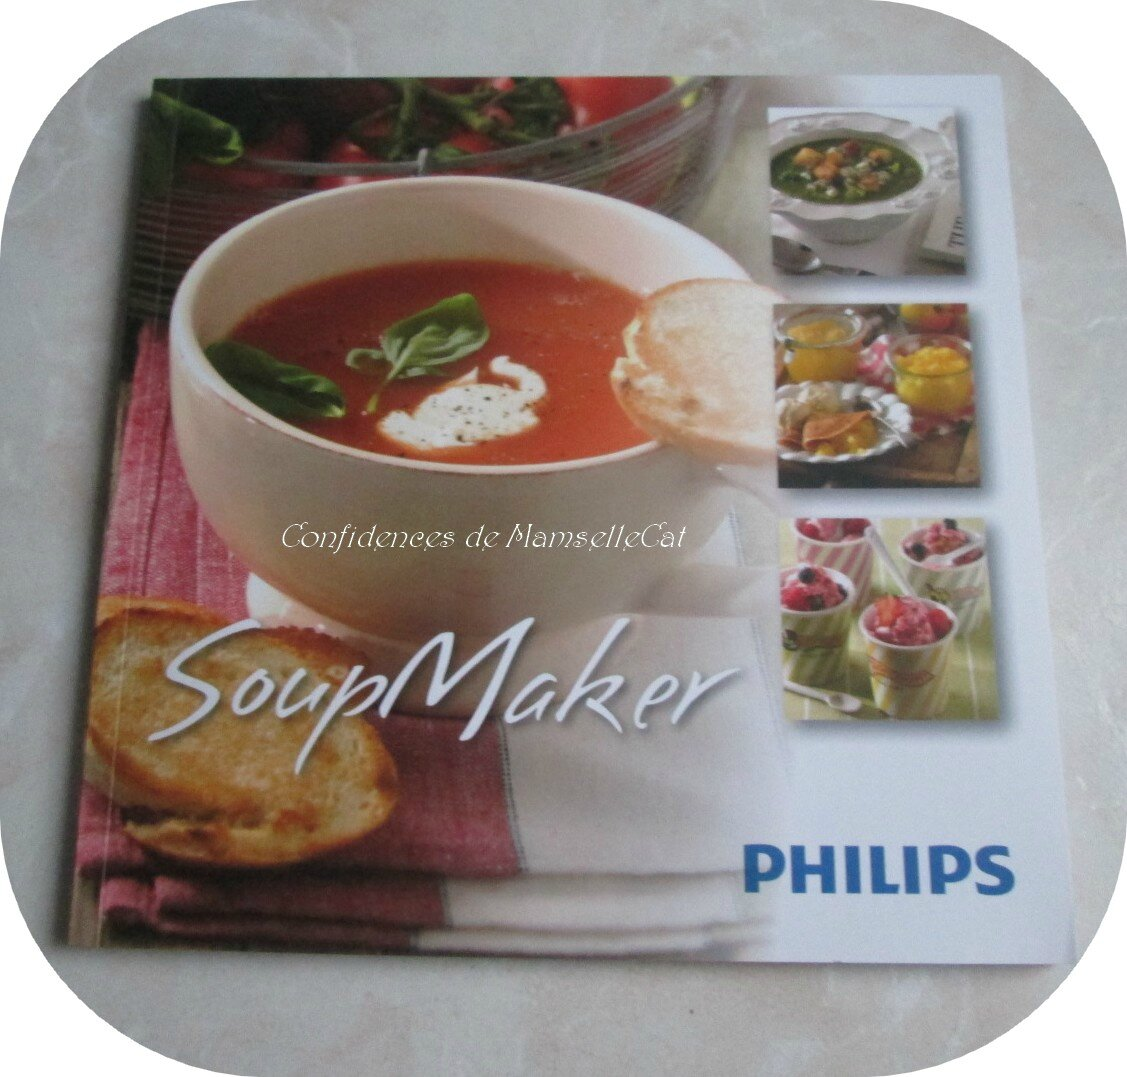 Delightful recette soup maker philips 9 philips hr2200 - Soup maker philips recettes ...